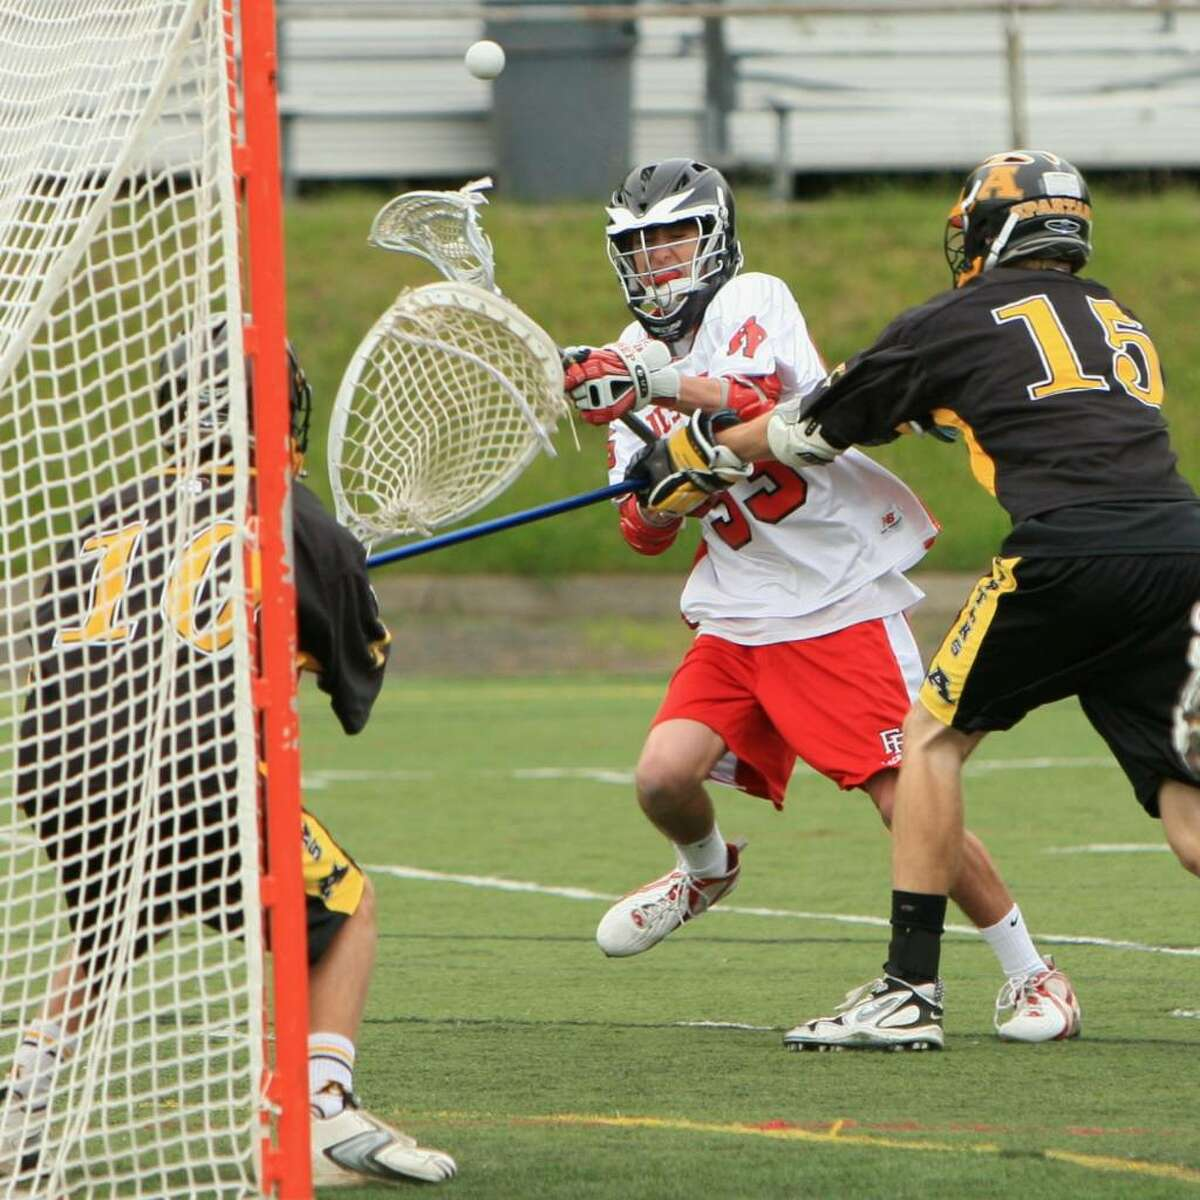 Fairfield Prep's Matt Mendencino tallies Fairfield Prep's 18th goal in the Jesuits' 19-4 win over Amity on Tuesday afternoon at Alumni Field. The goal was Medencino's first career varsity goal.